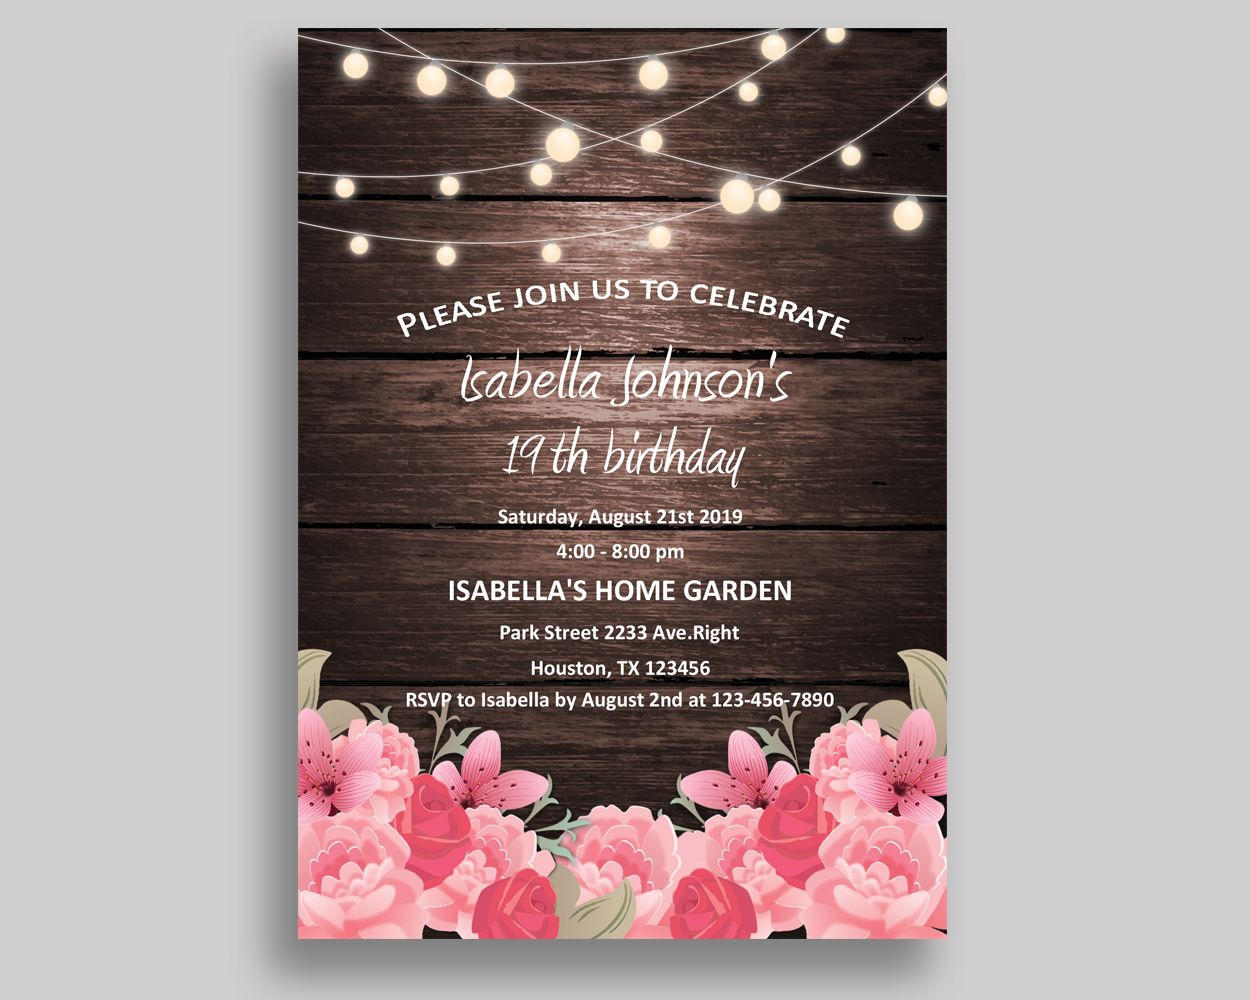 Rustic Birthday Invitation Rustic Birthday Party Invitation Rustic